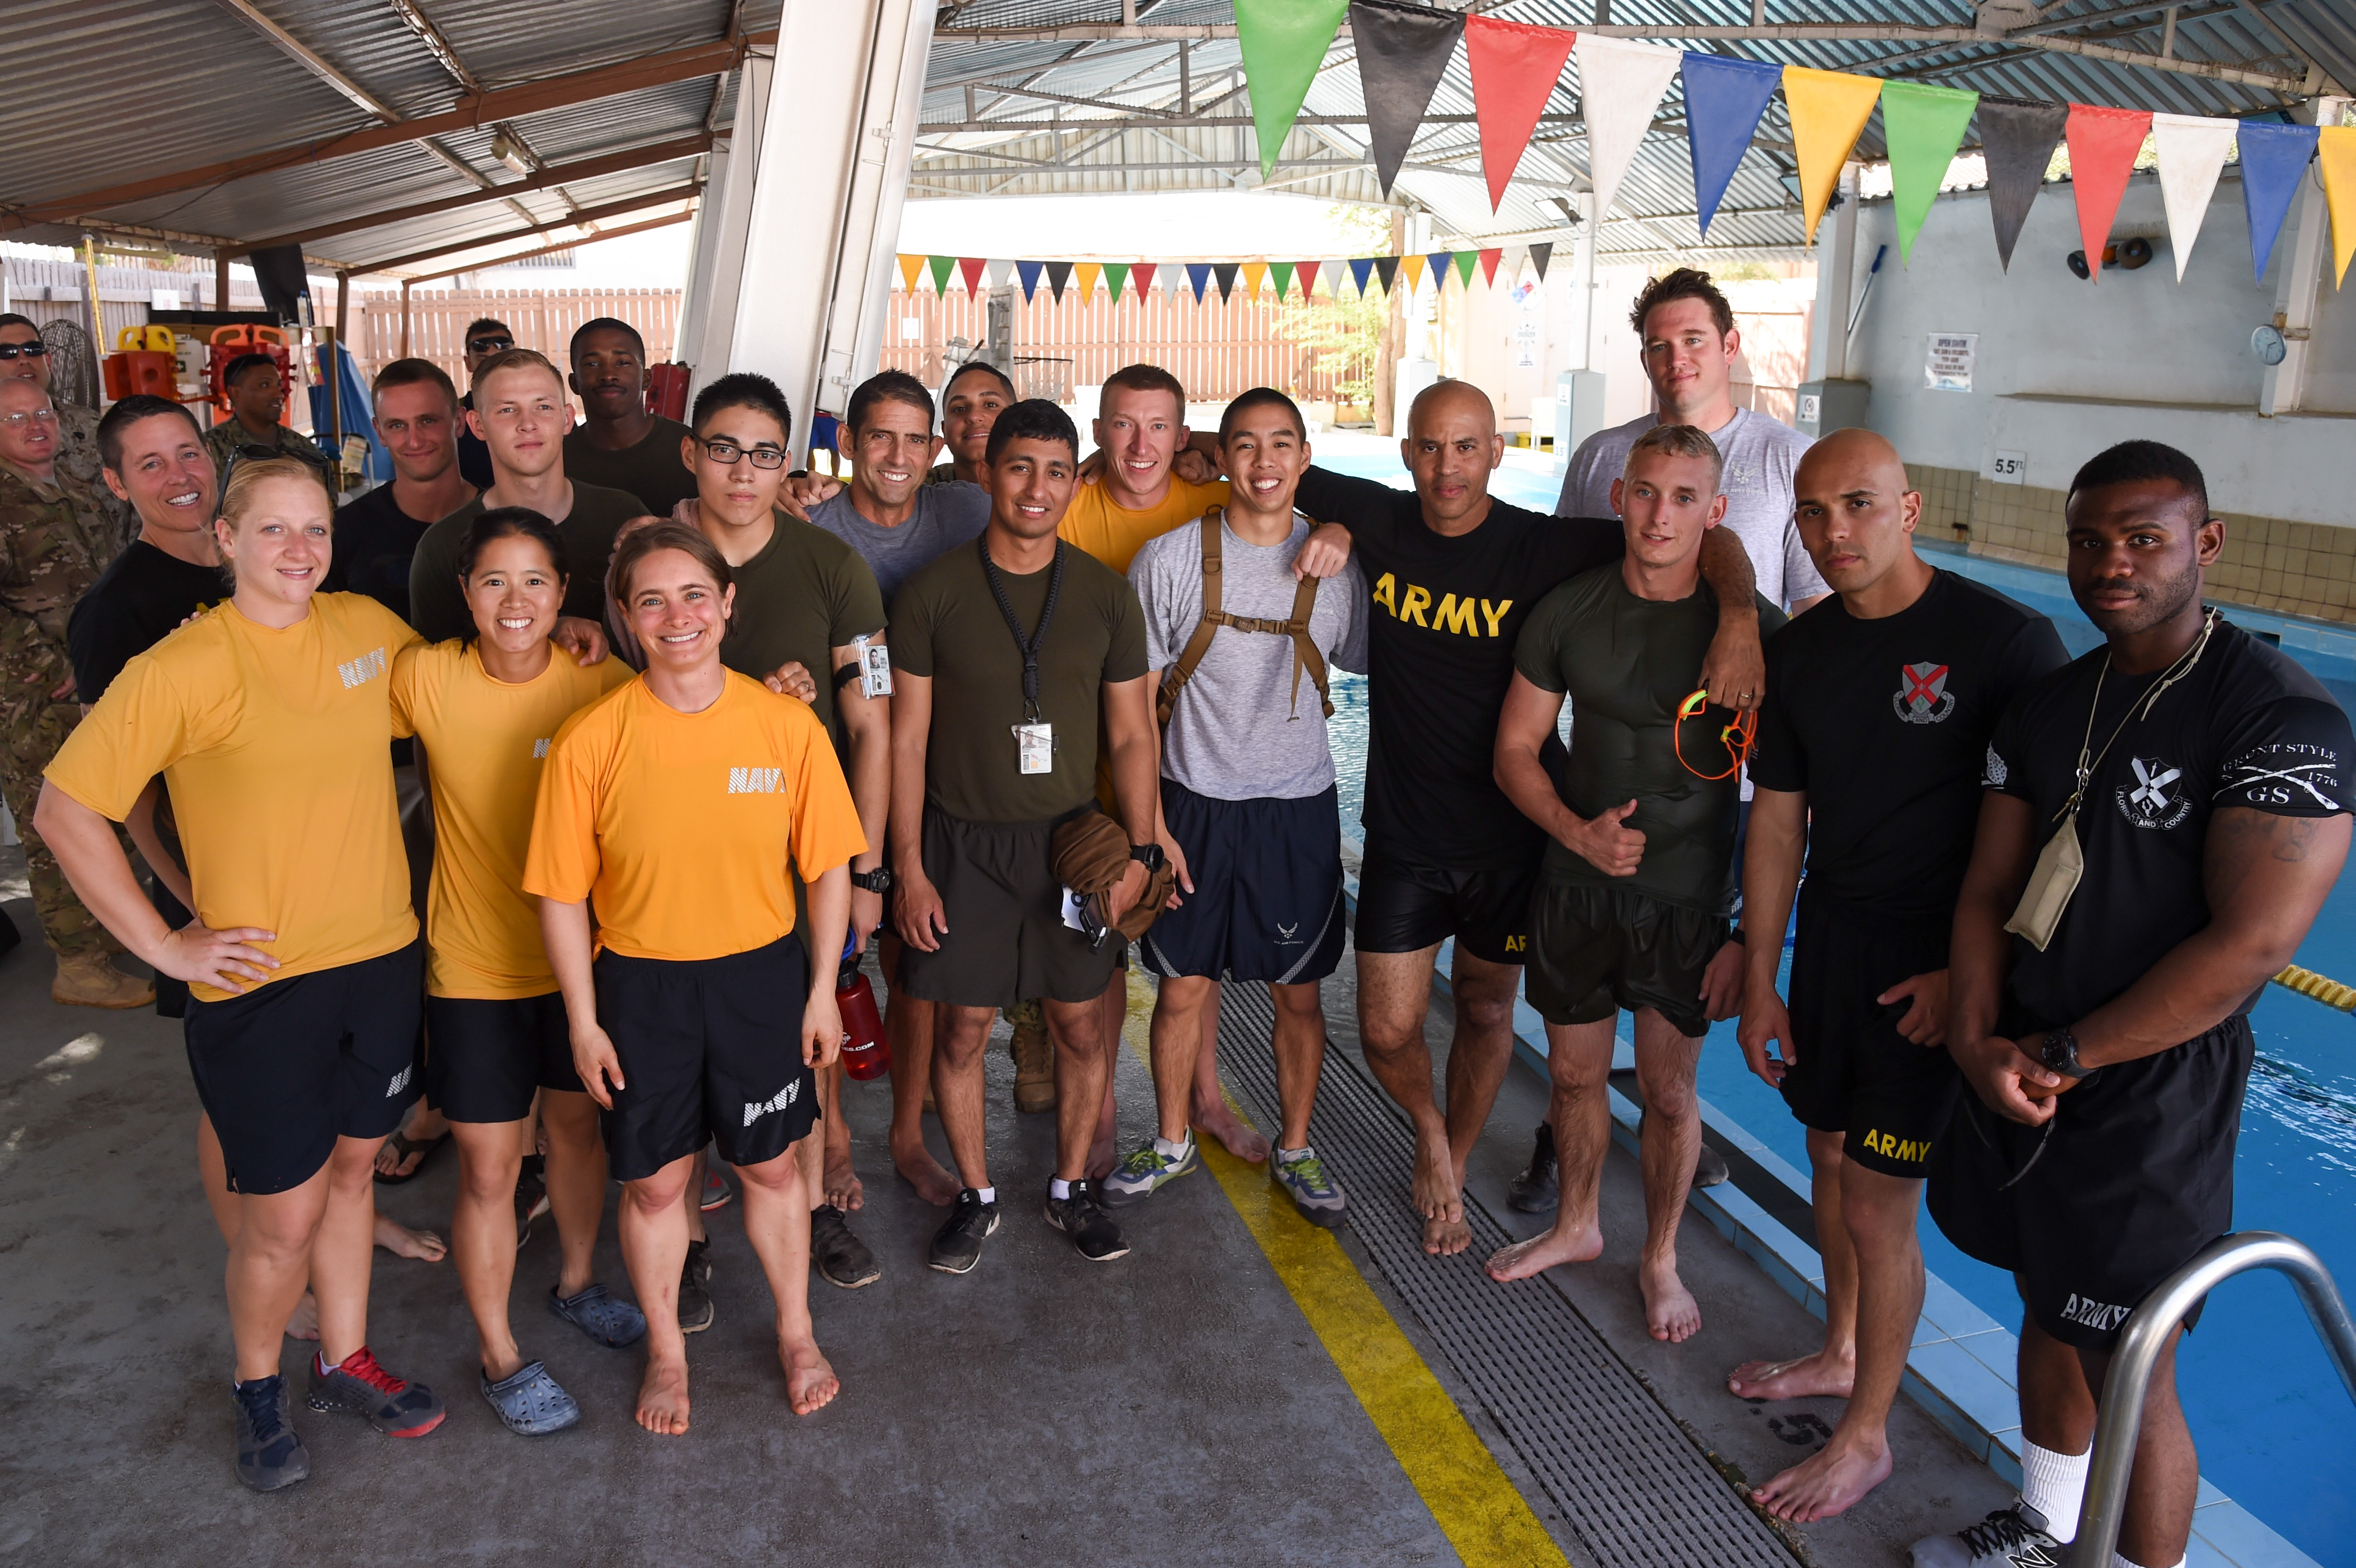 U.S. service members assigned to Combined Joint Task Force-Horn of Africa and Camp Lemonnier pose for a group photo after finishing the 240-meter Navy swim test for the Joint Warrior Competition, Nov. 19, 2016, Camp Lemonnier, Djibouti. Before the swim test, competitors completed a joint physical fitness test and a joint combat fitness test comprised of: pull-ups, push-ups, sit-ups, two-mile run, five-mile ruck march, a low crawl, tourniquet application, buddy carry, radio medical evacuation, grenade toss, tire flip, ammo can carry, dead lift, and rope climb. (U.S. Air National Guard photo by Staff Sgt. Penny Snoozy)